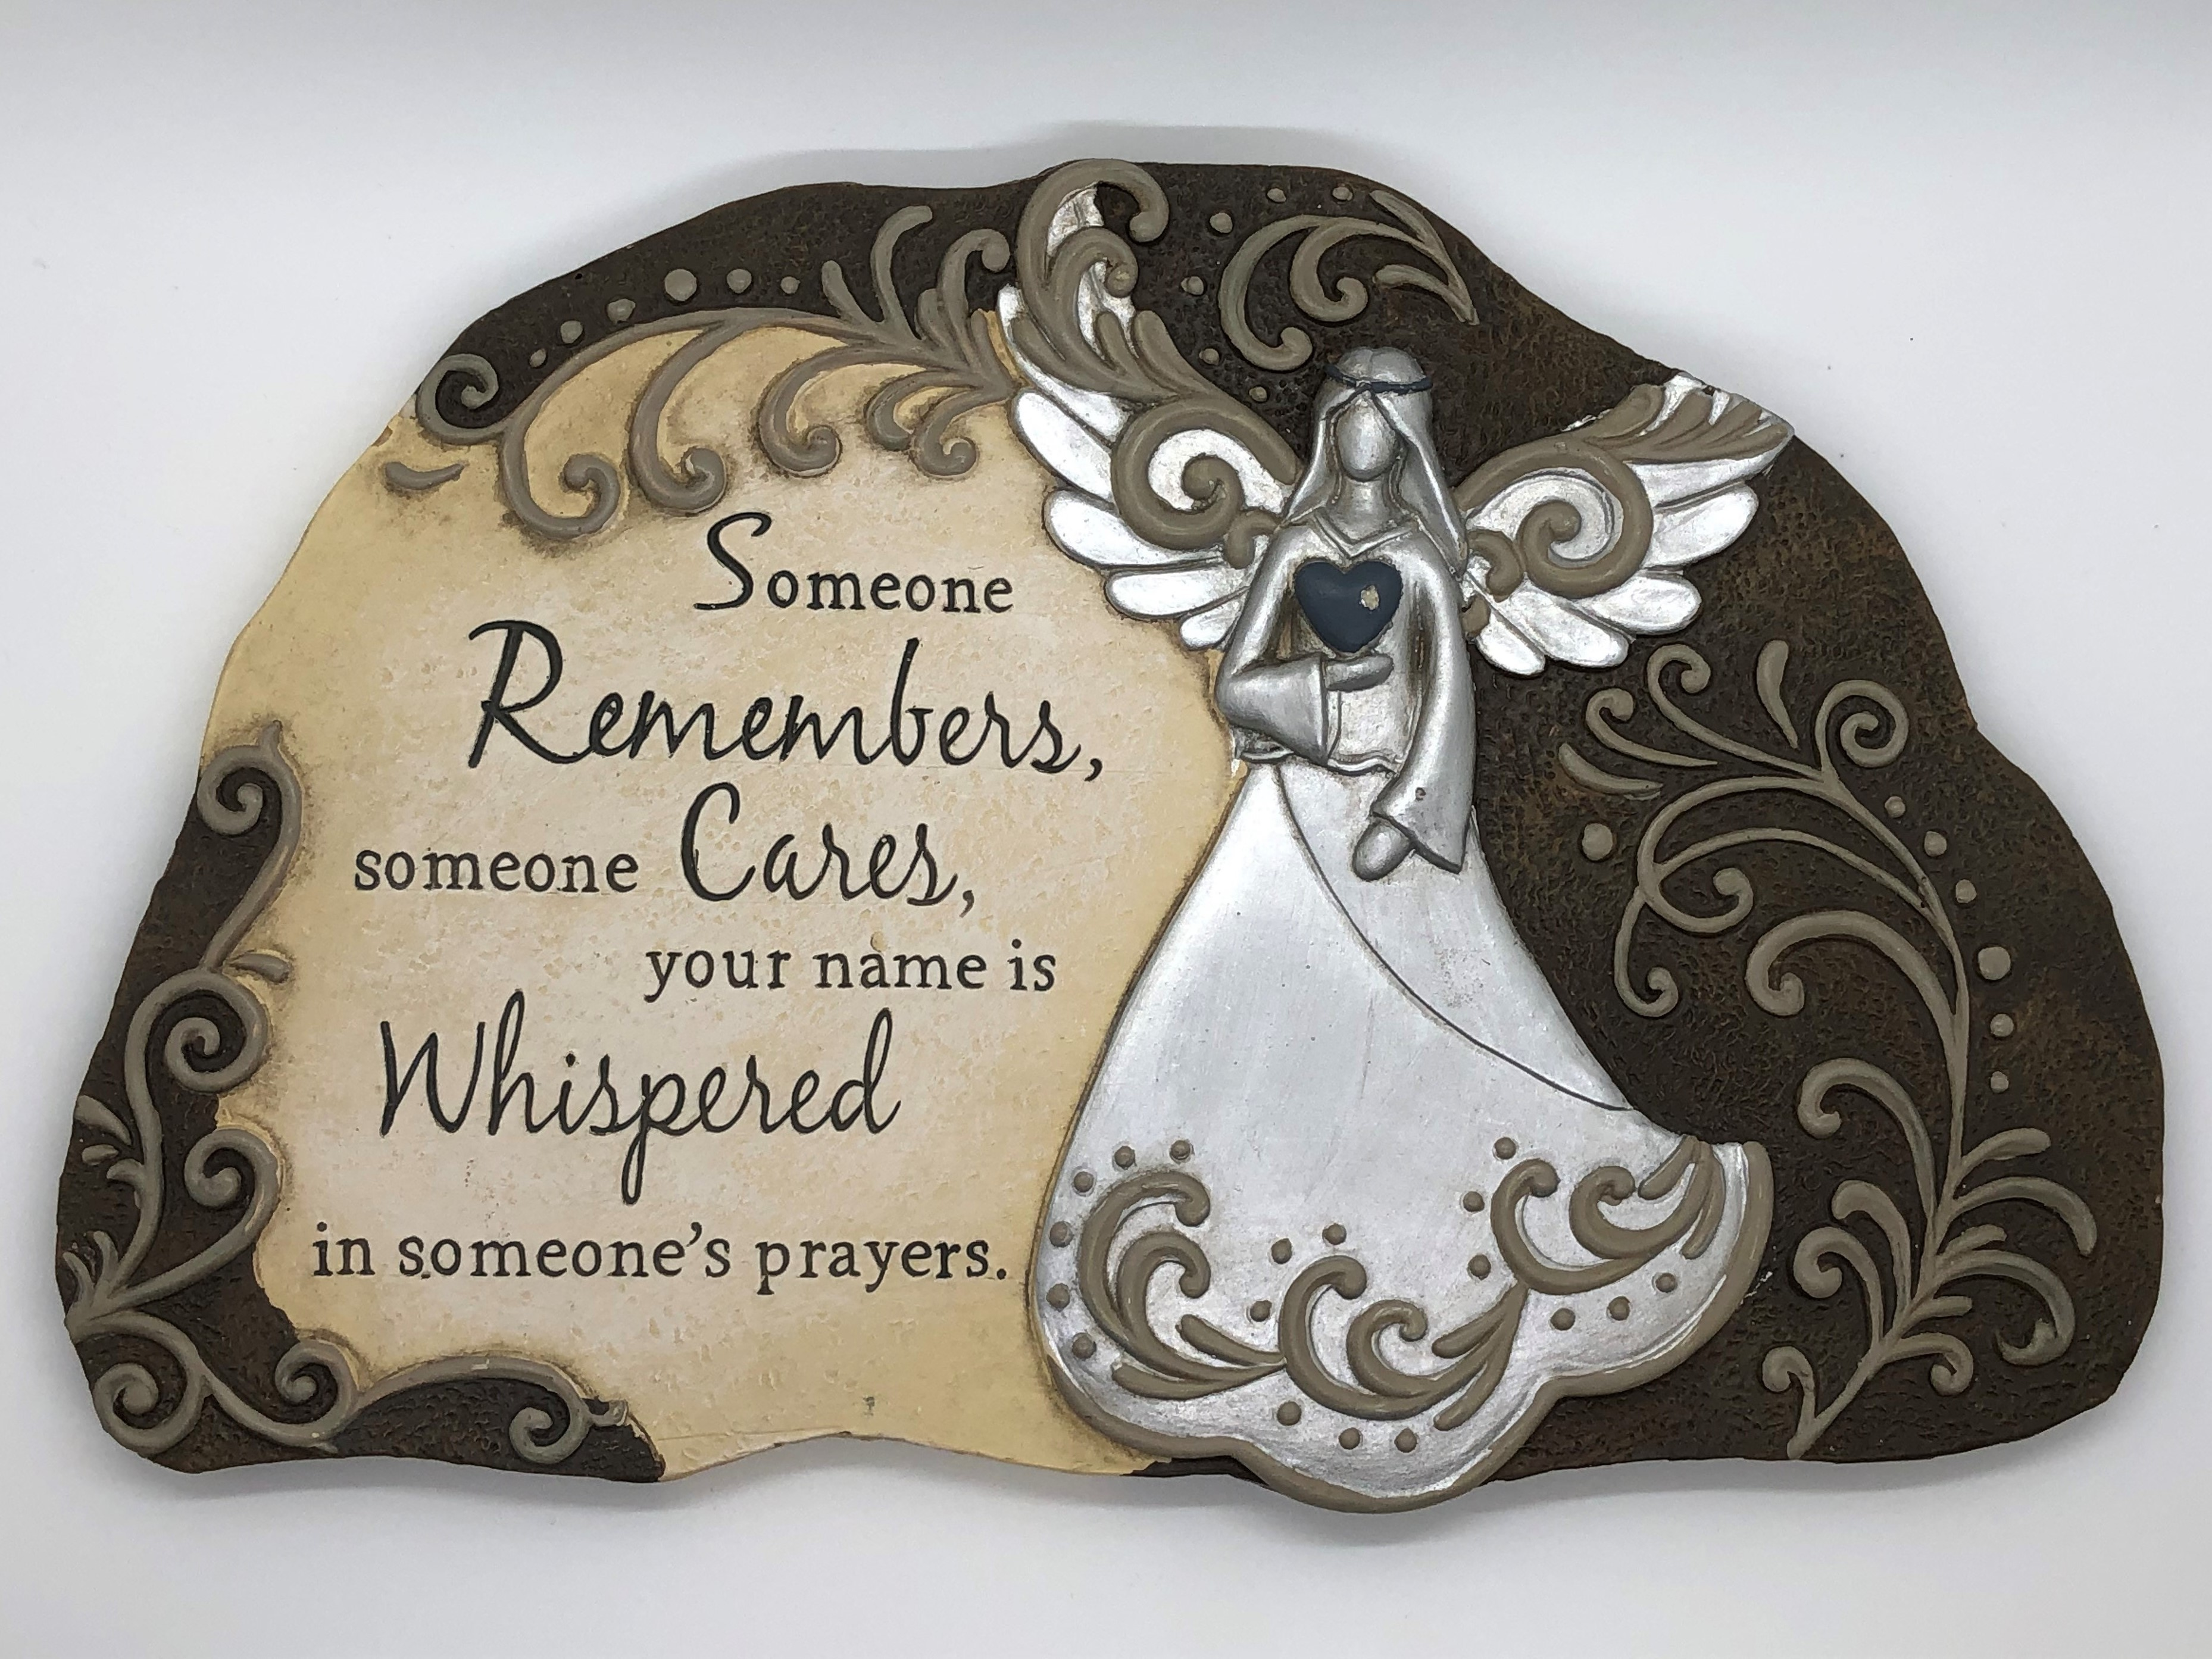 Garden Plaque Stepping Stones ~Someone remembers, someone Cares, your name is Whispered in someone's prayers